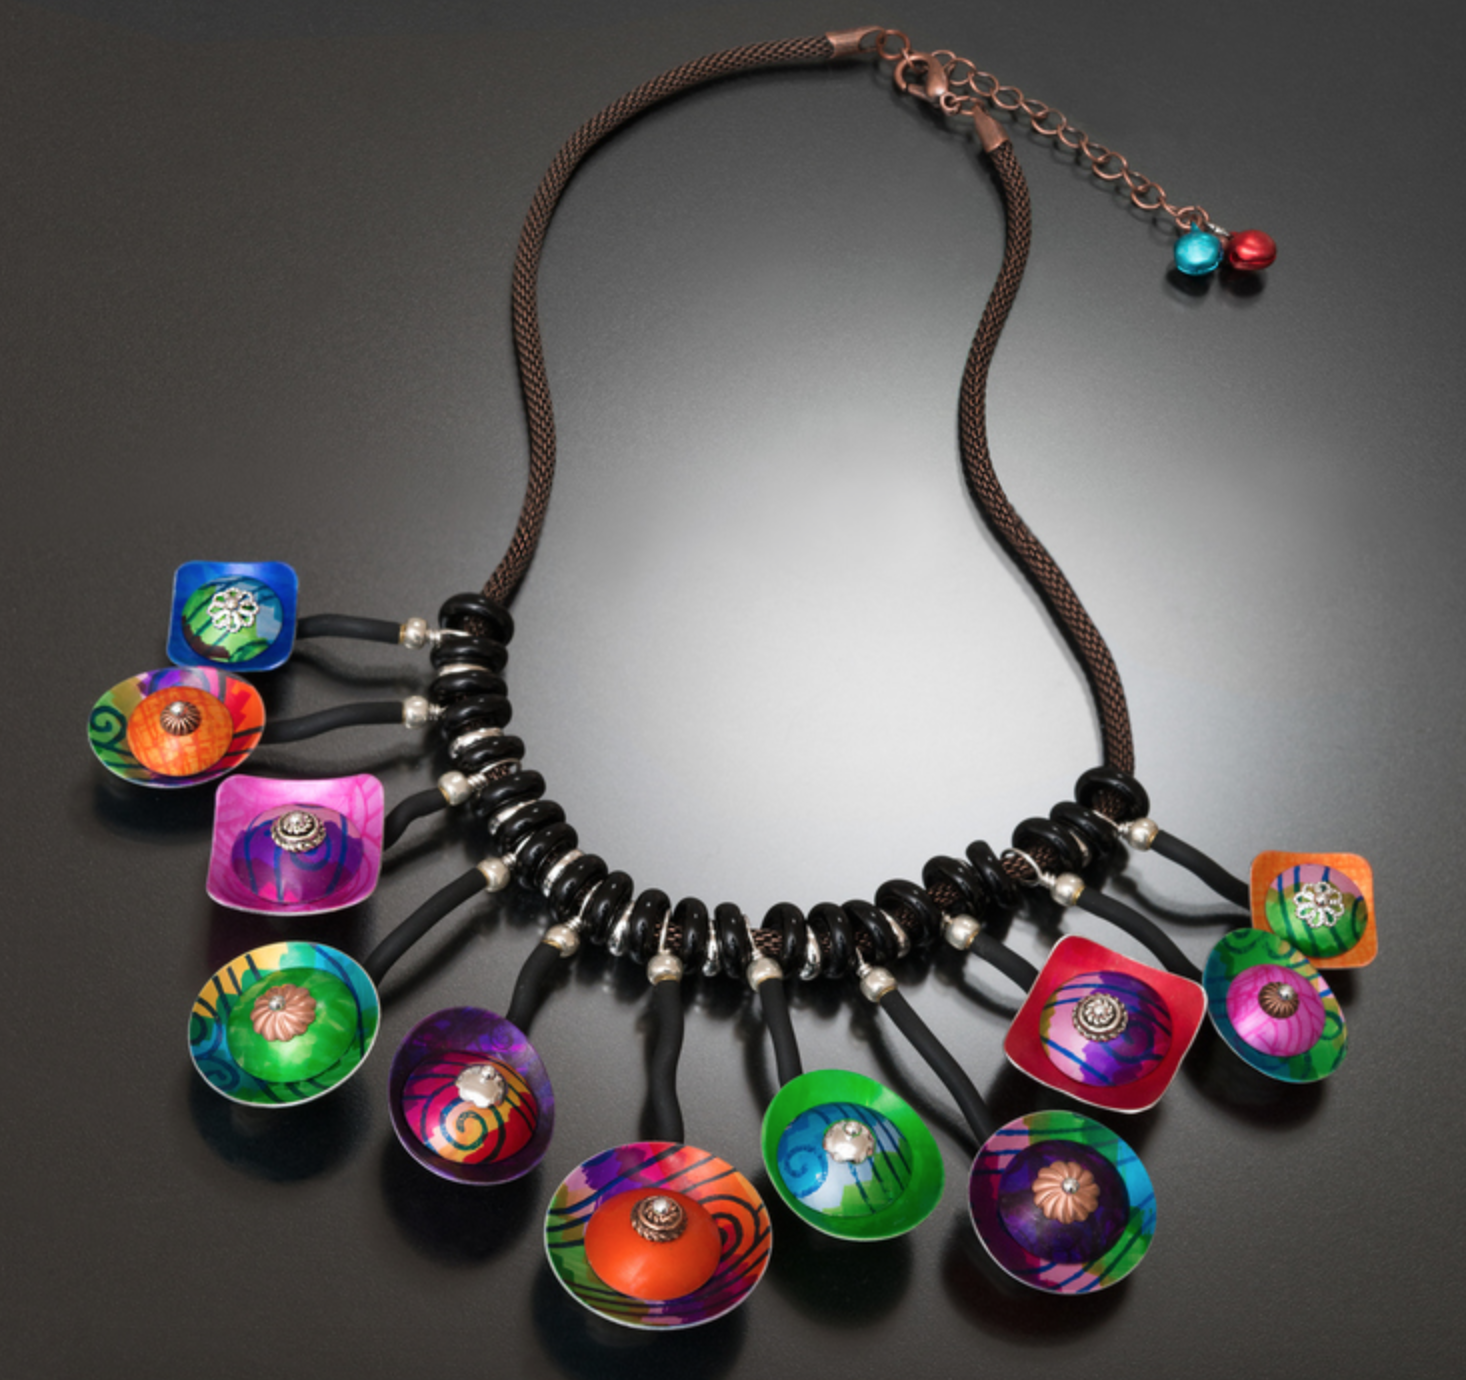 Dana McDaniel - http://danadesignstudio.comJewelry of mixed metals including copper, pewter, silver and hand-painted and heat-treated aluminum. Some with kiln-fired glass, set gemstones, river stones and vitreous enamels